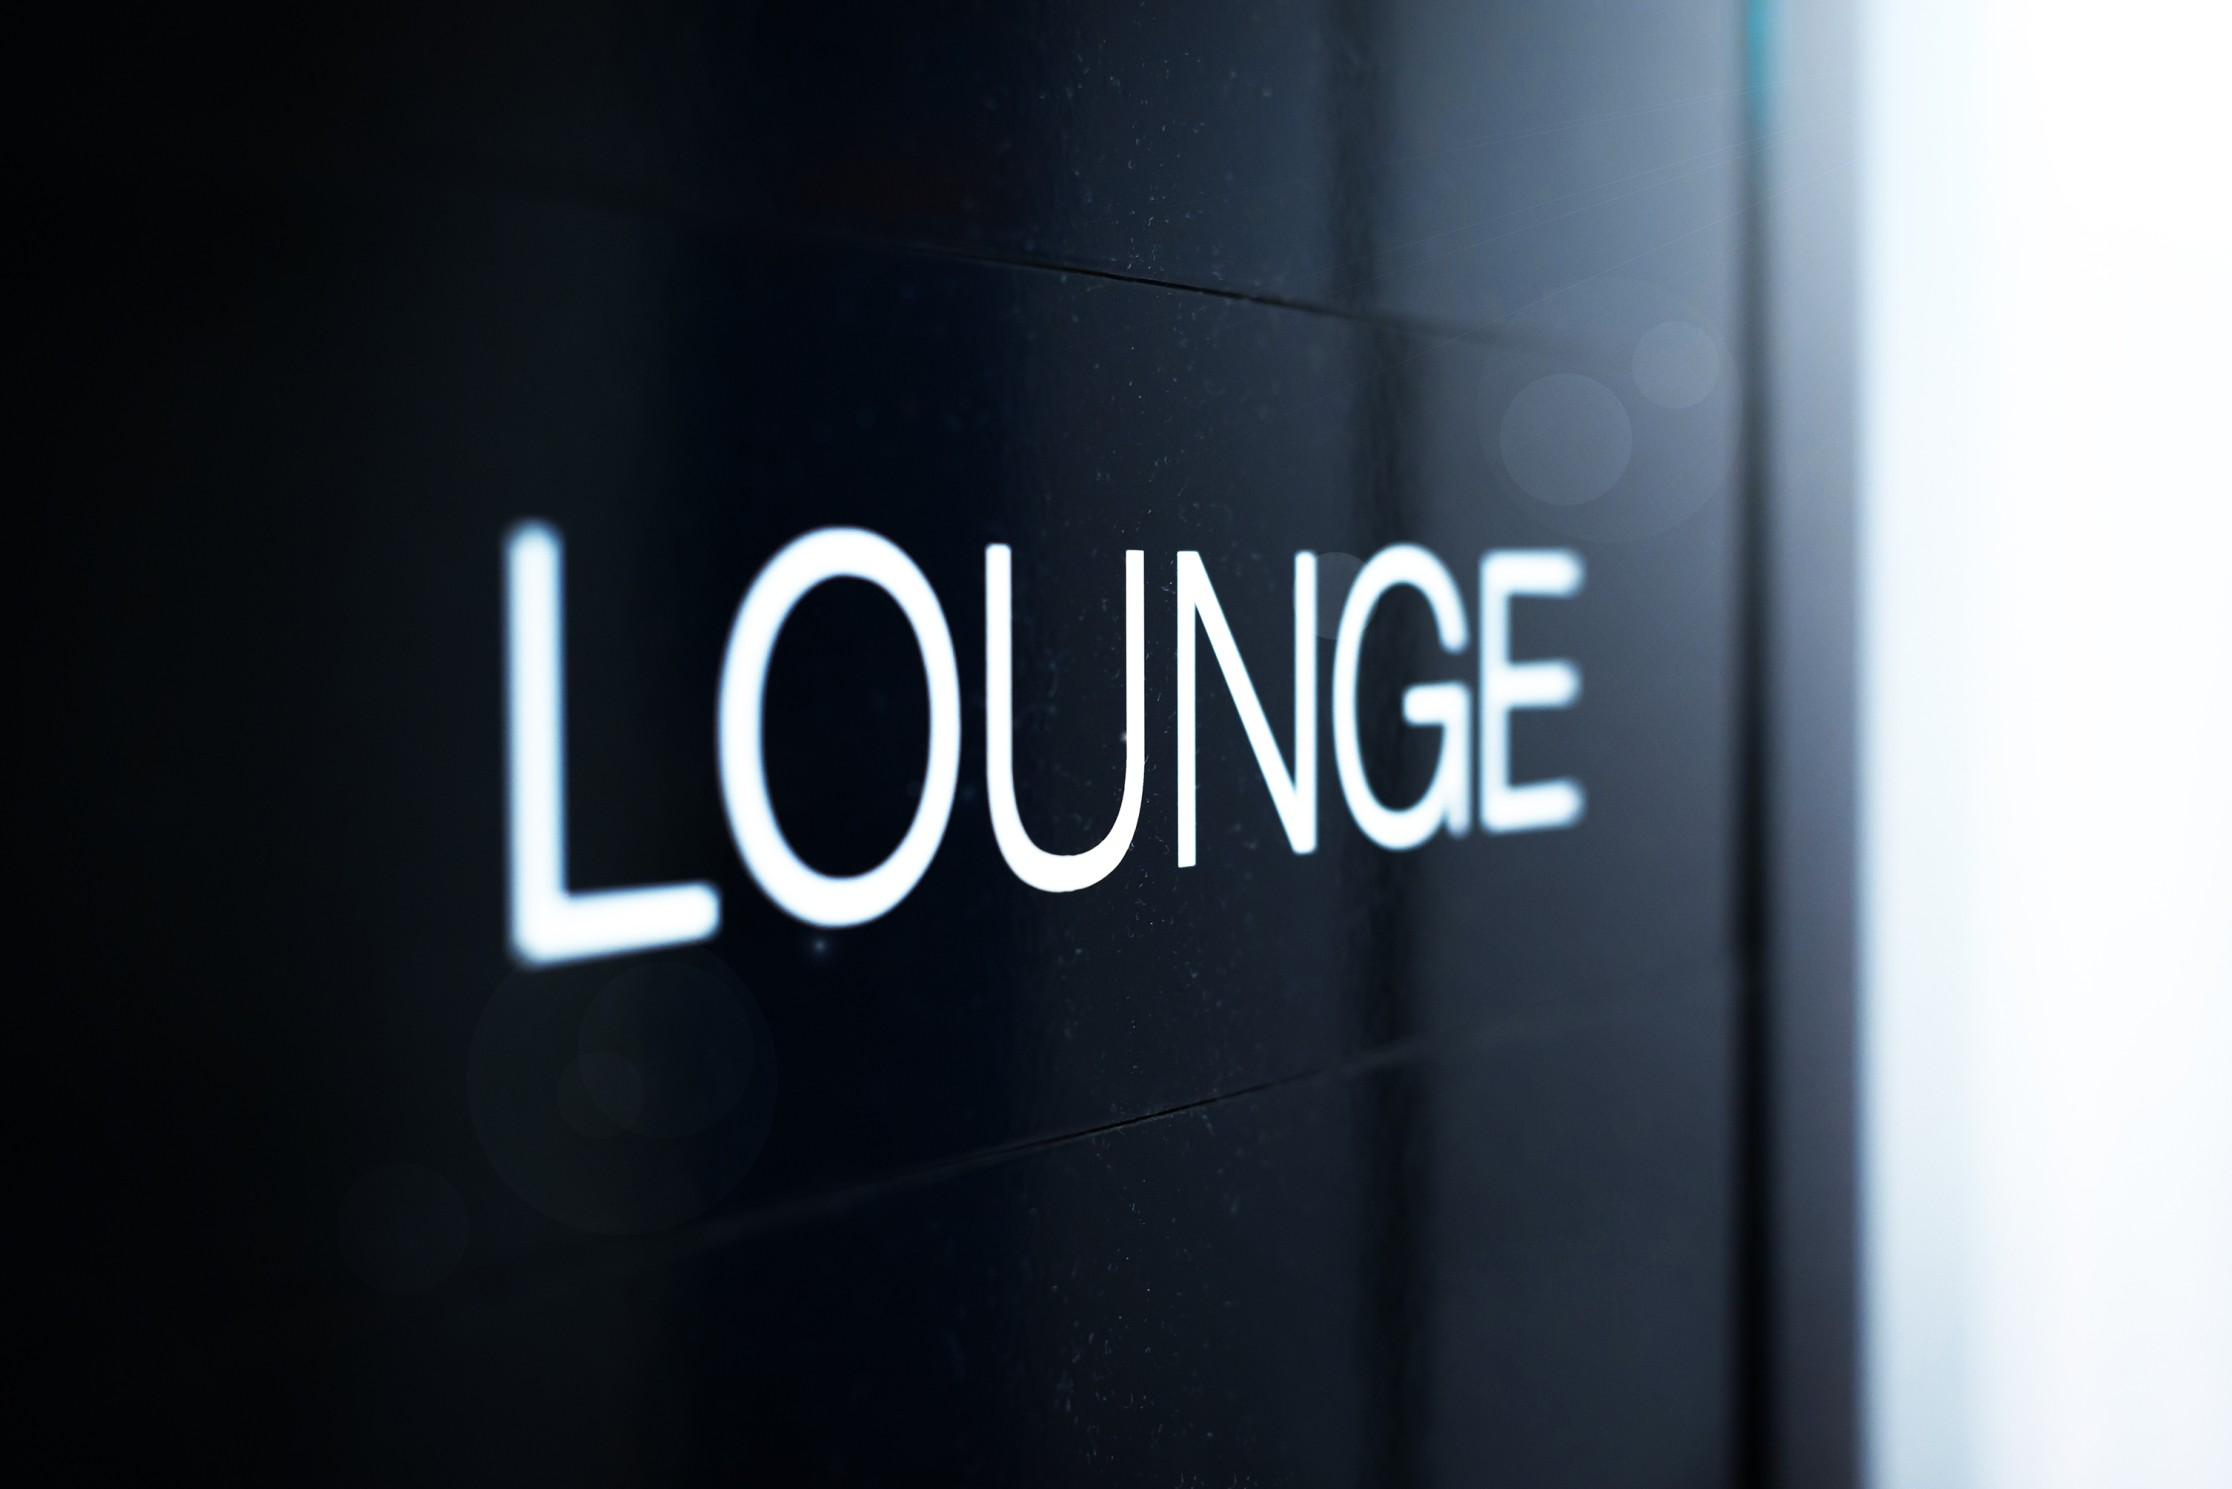 the business lounge....